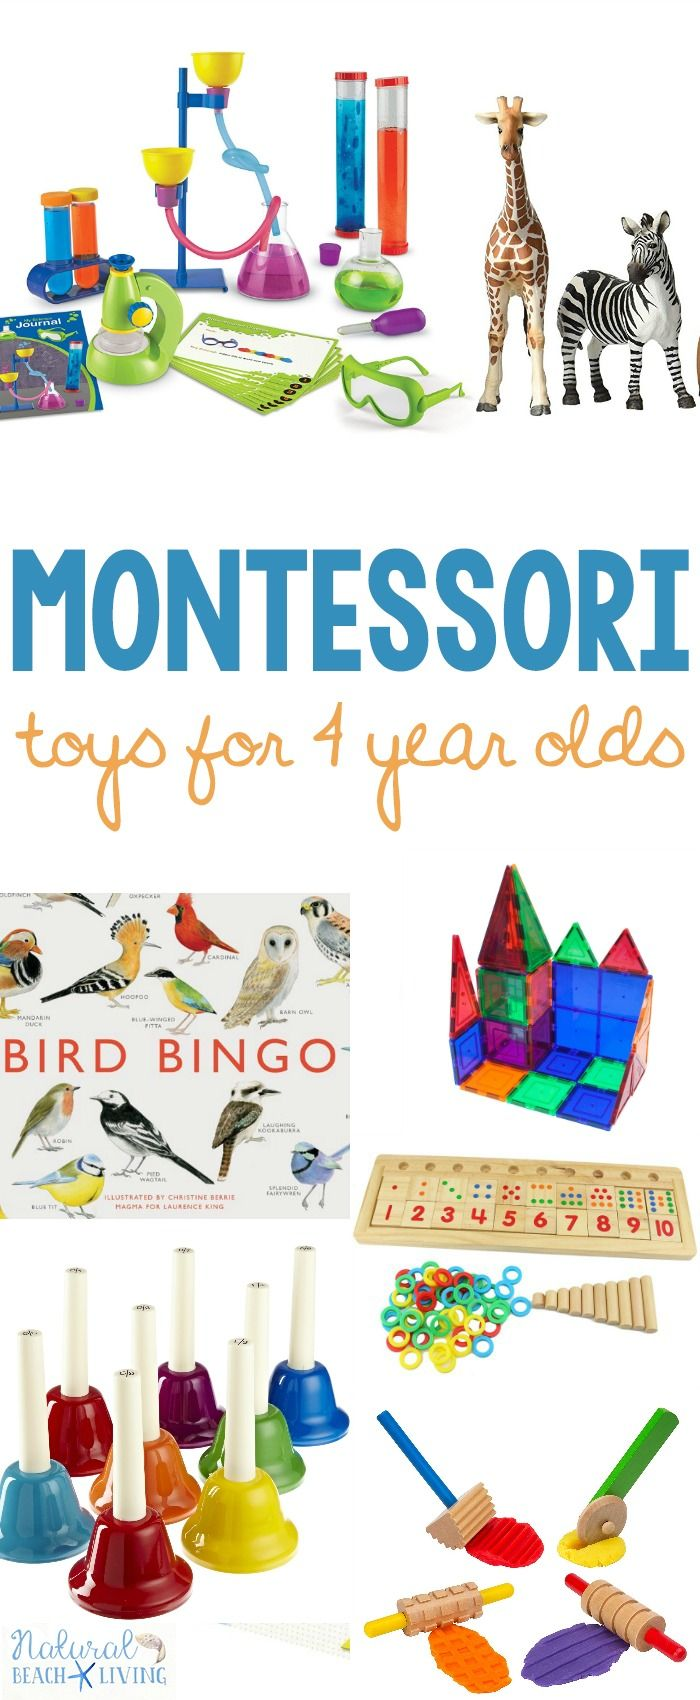 The Ultimate Guide For The Best Montessori Toys For 4 Year Olds Natural Beach Living 4 Year Old Toys Montessori Toys Toys For 1 Year Old